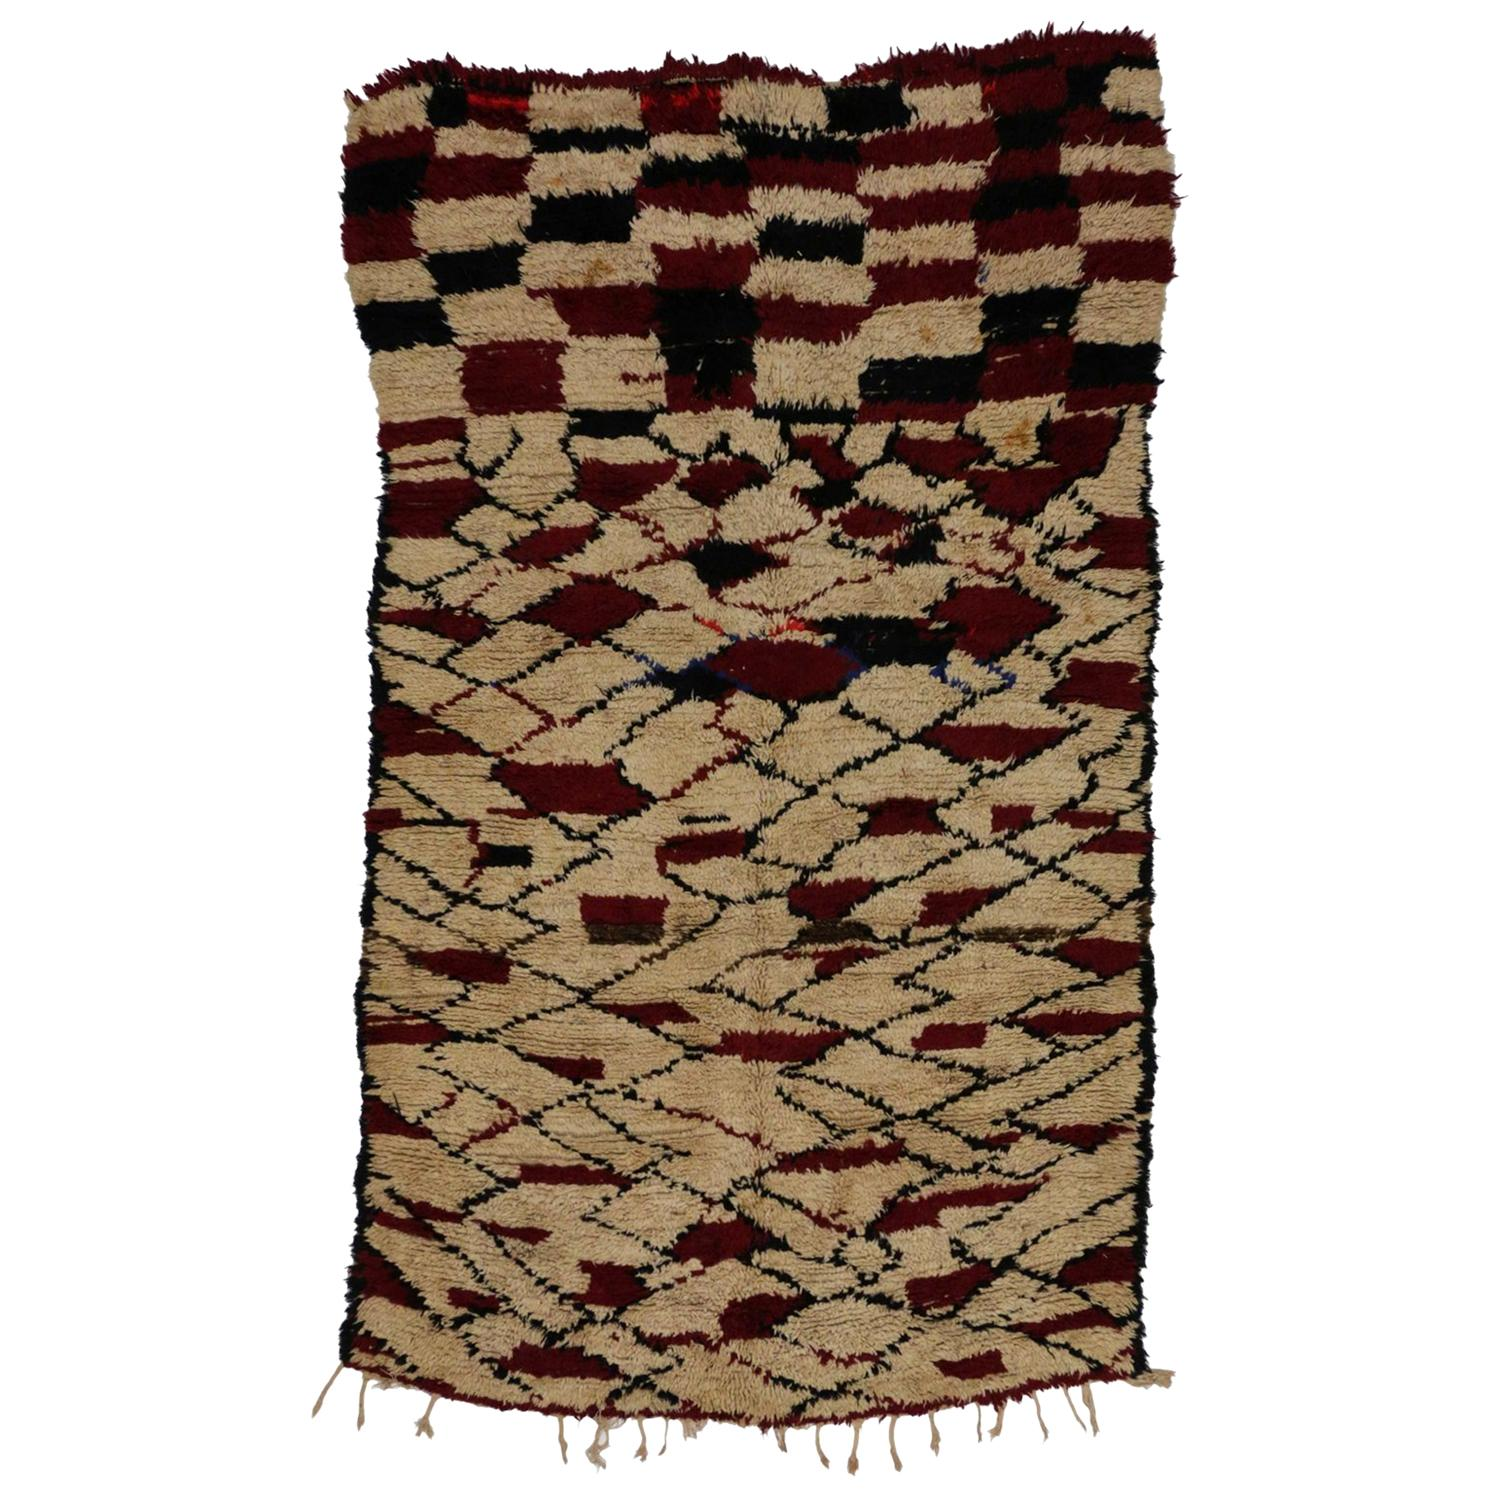 Vintage  Berber Moroccan Rug with Modern Cubism Style